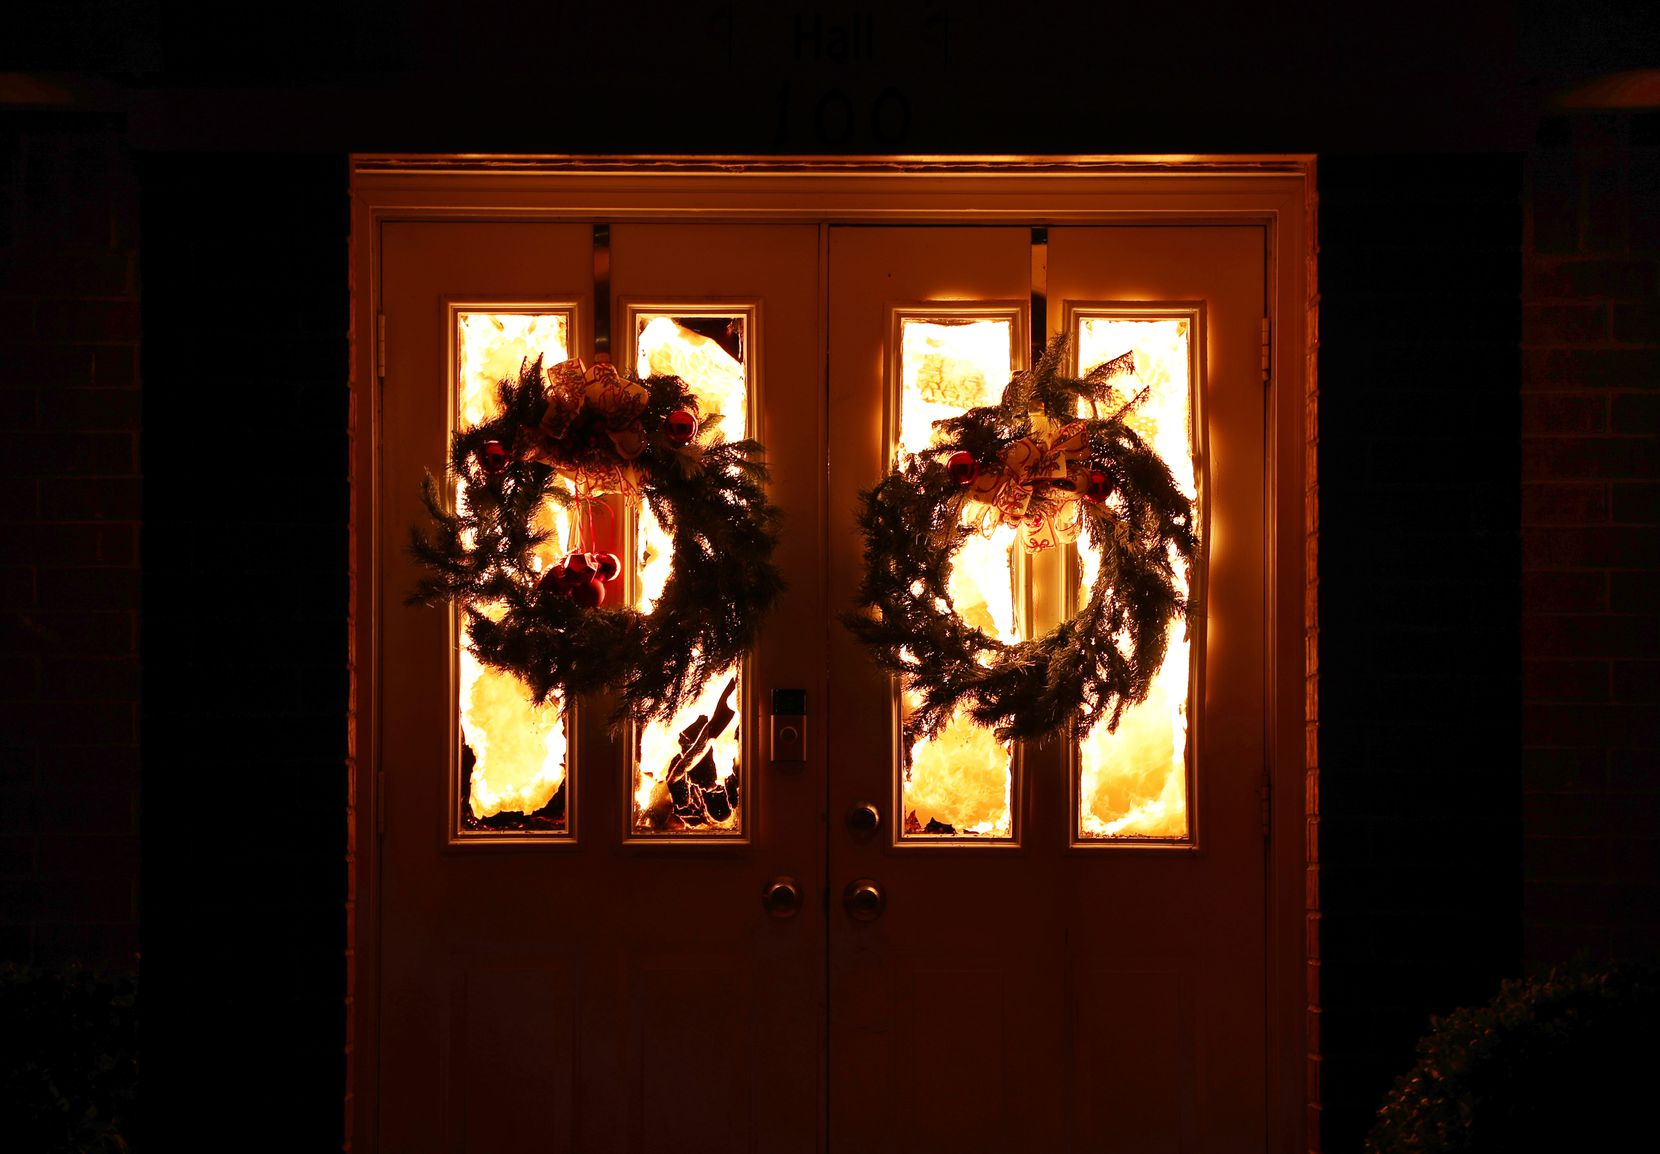 Christmas wreaths hung on the doors at Anna United Methodist Church as it burned Friday.